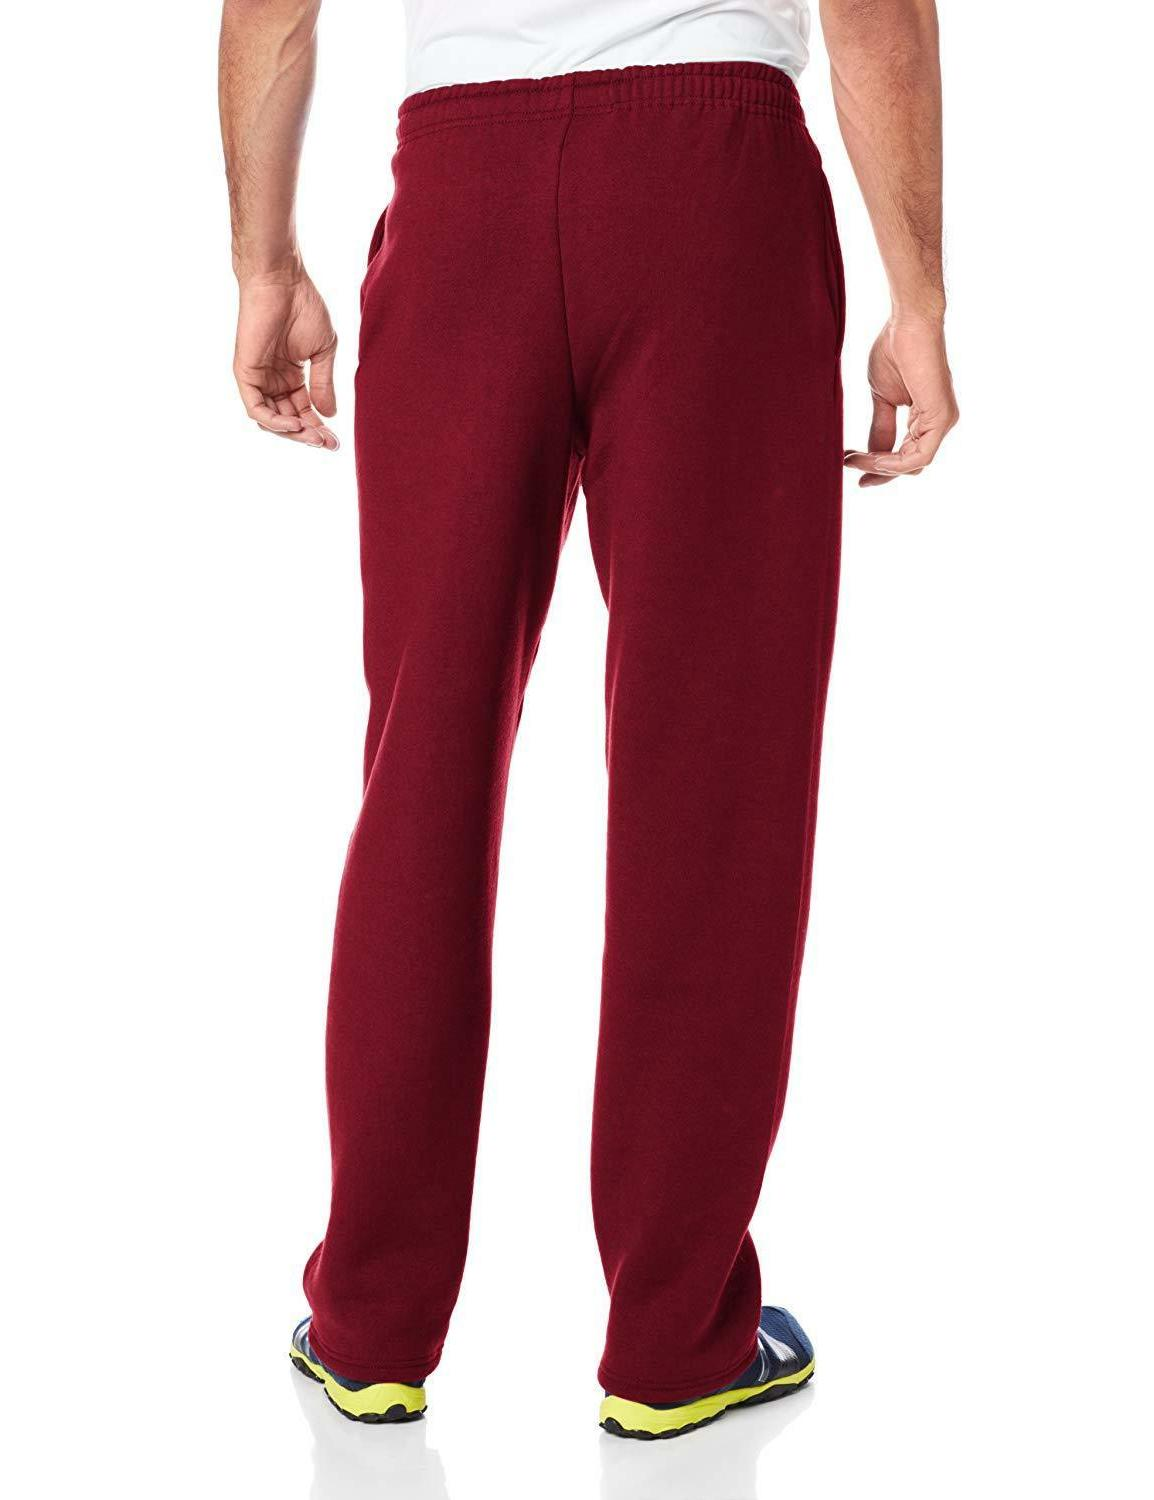 Russell Athletic Men's Open Sweatpants Pockets